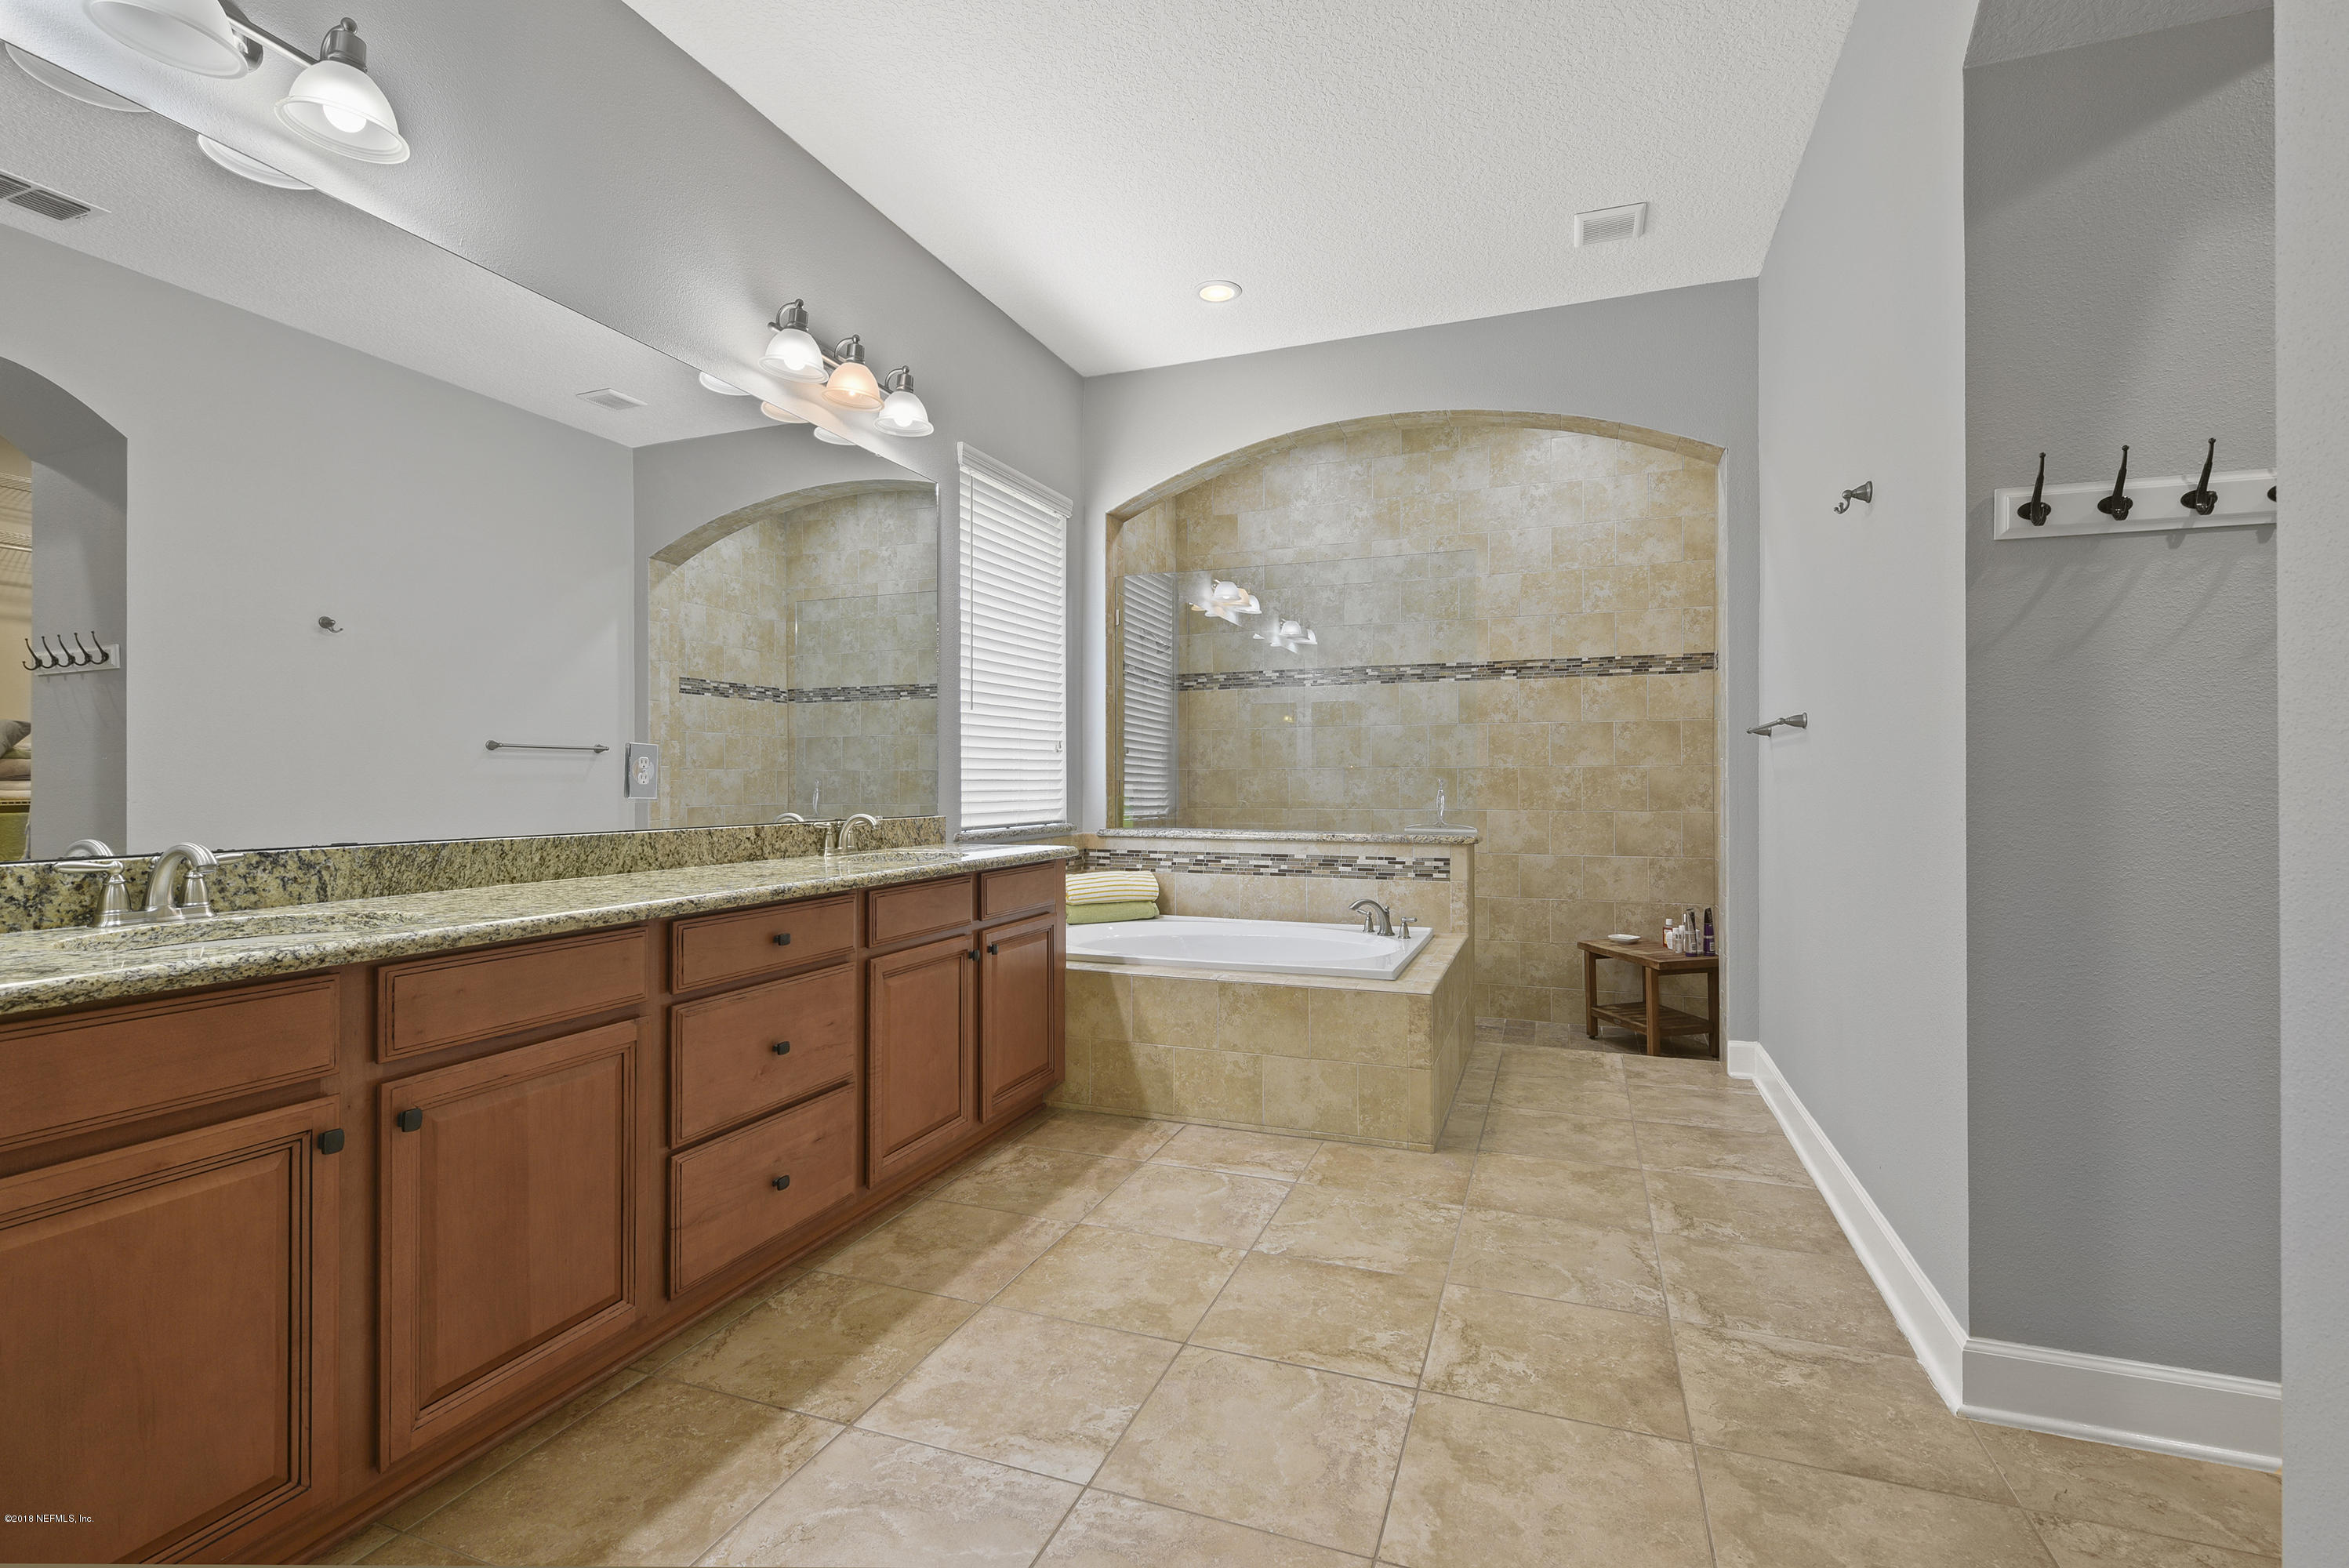 572 MAJESTIC EAGLE, PONTE VEDRA BEACH, FLORIDA 32081, 5 Bedrooms Bedrooms, ,4 BathroomsBathrooms,Residential - single family,For sale,MAJESTIC EAGLE,963910